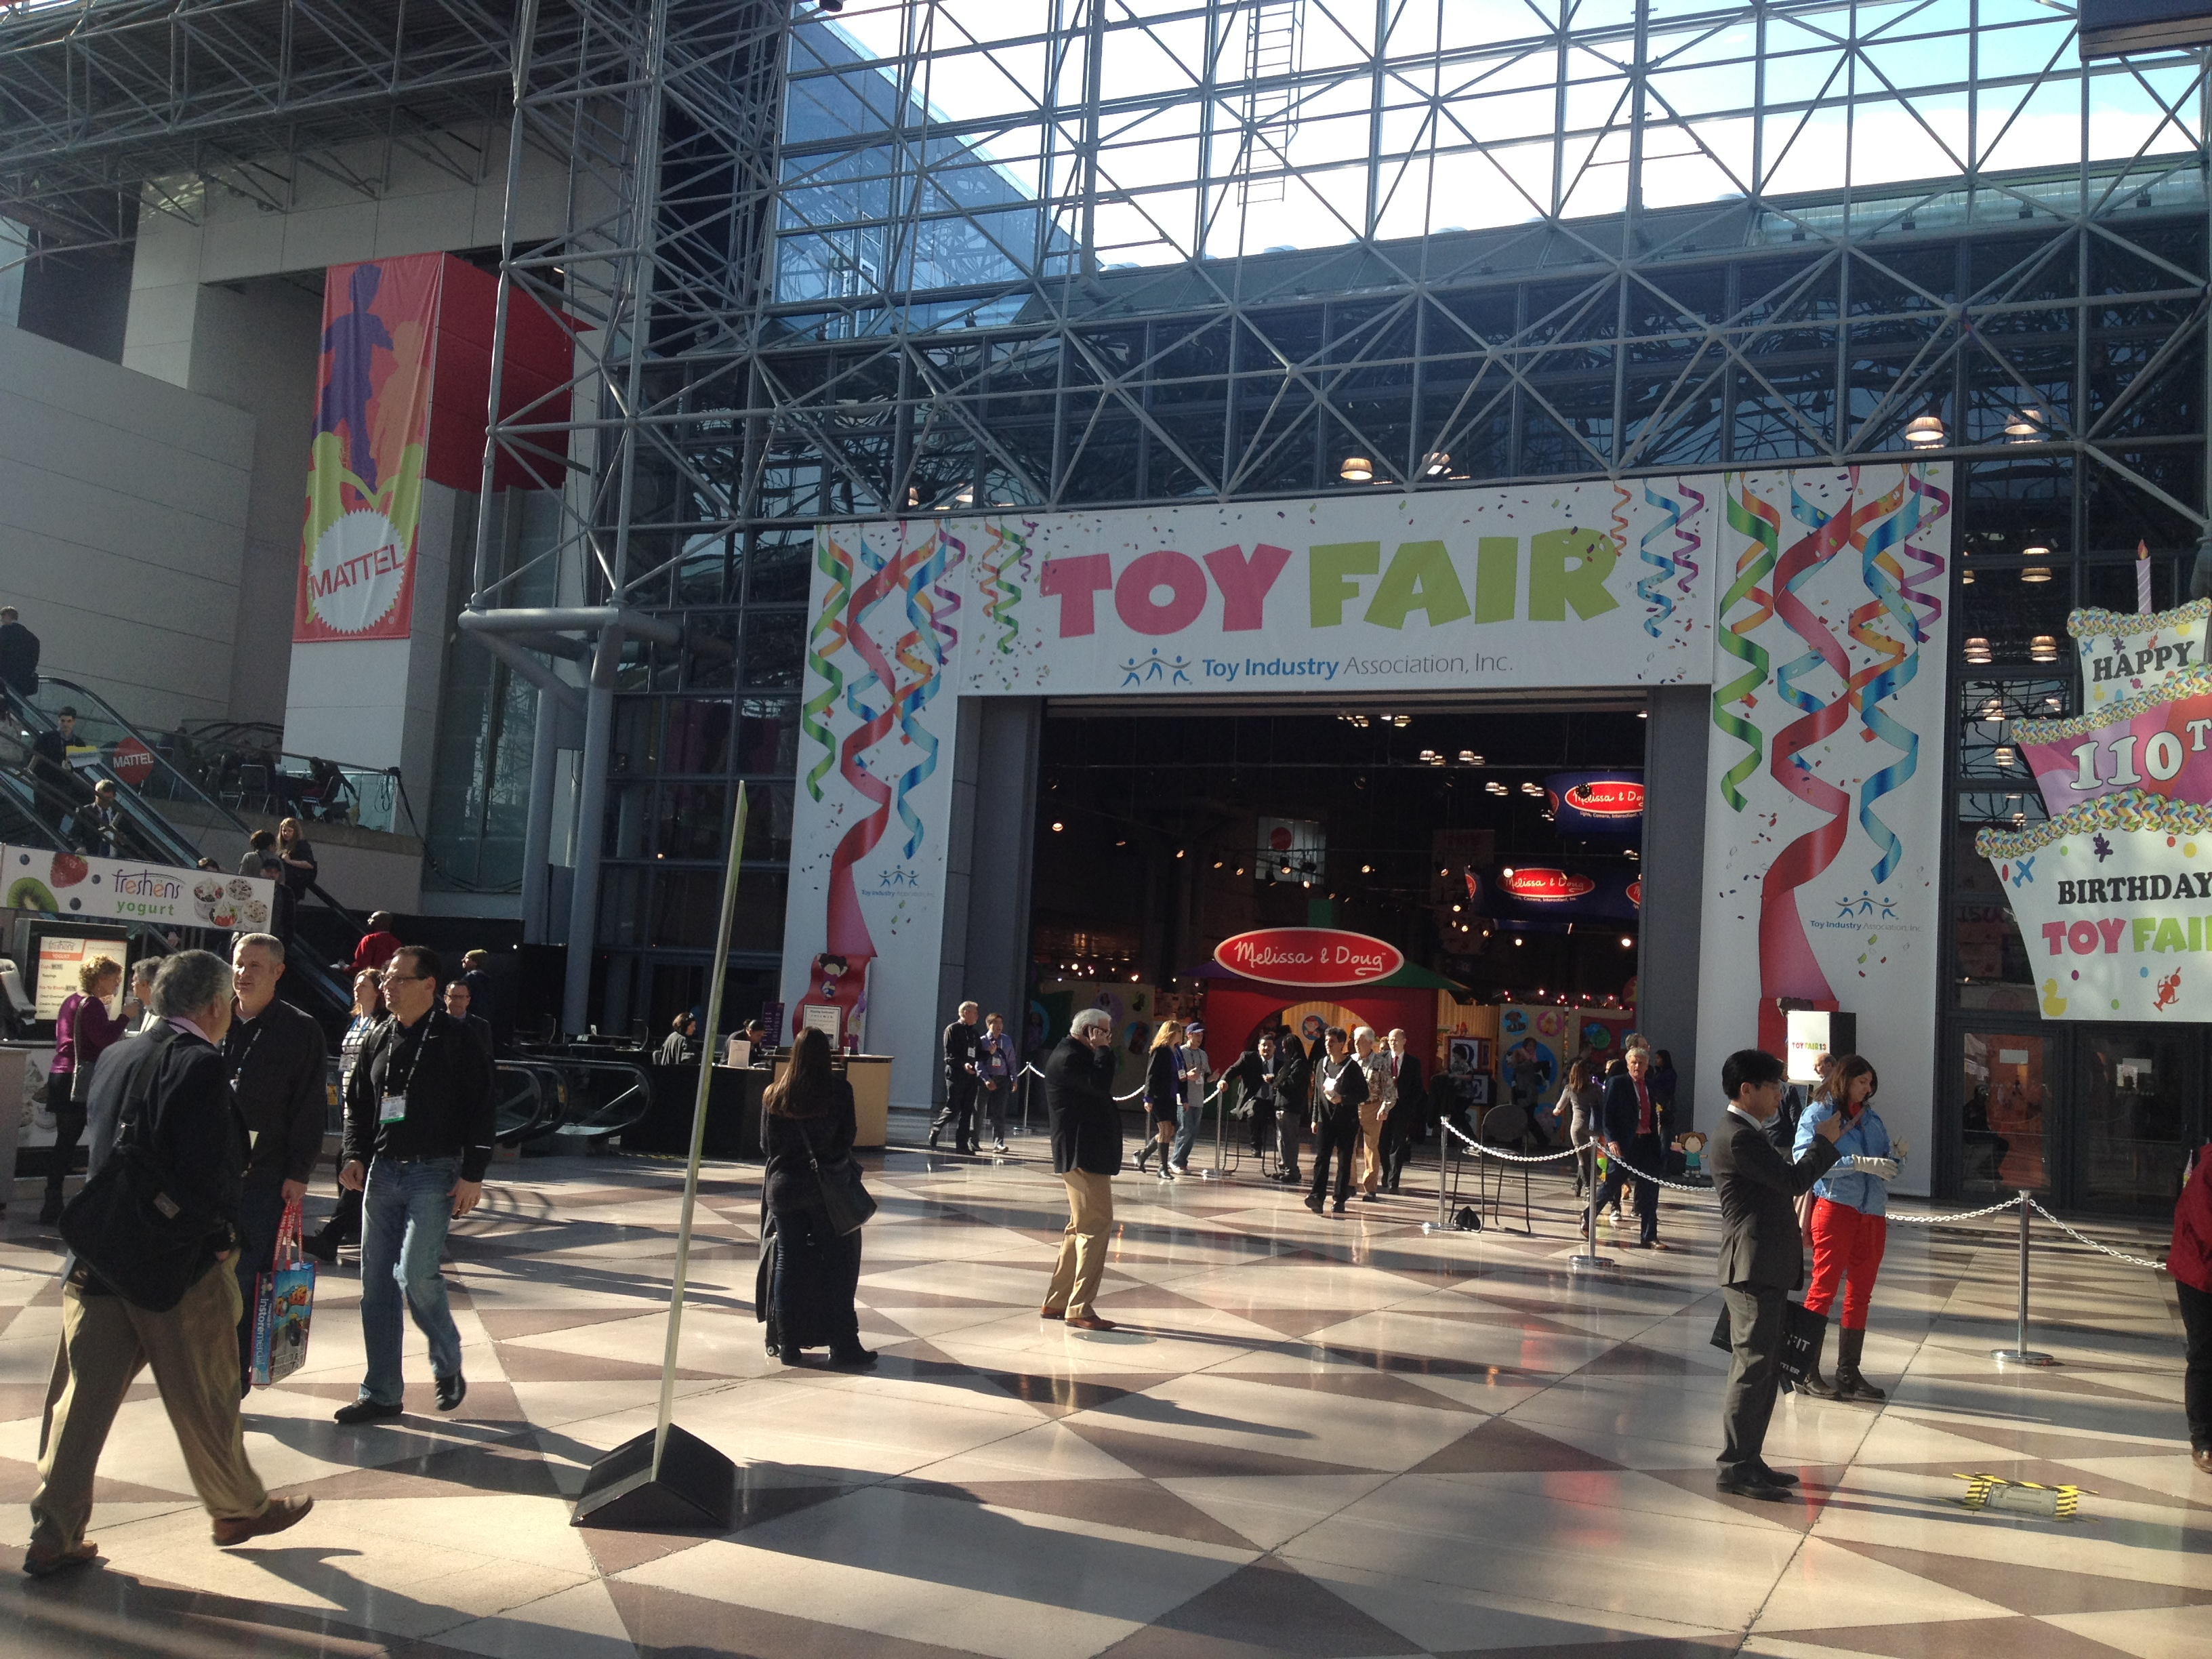 Toy Fair entrance